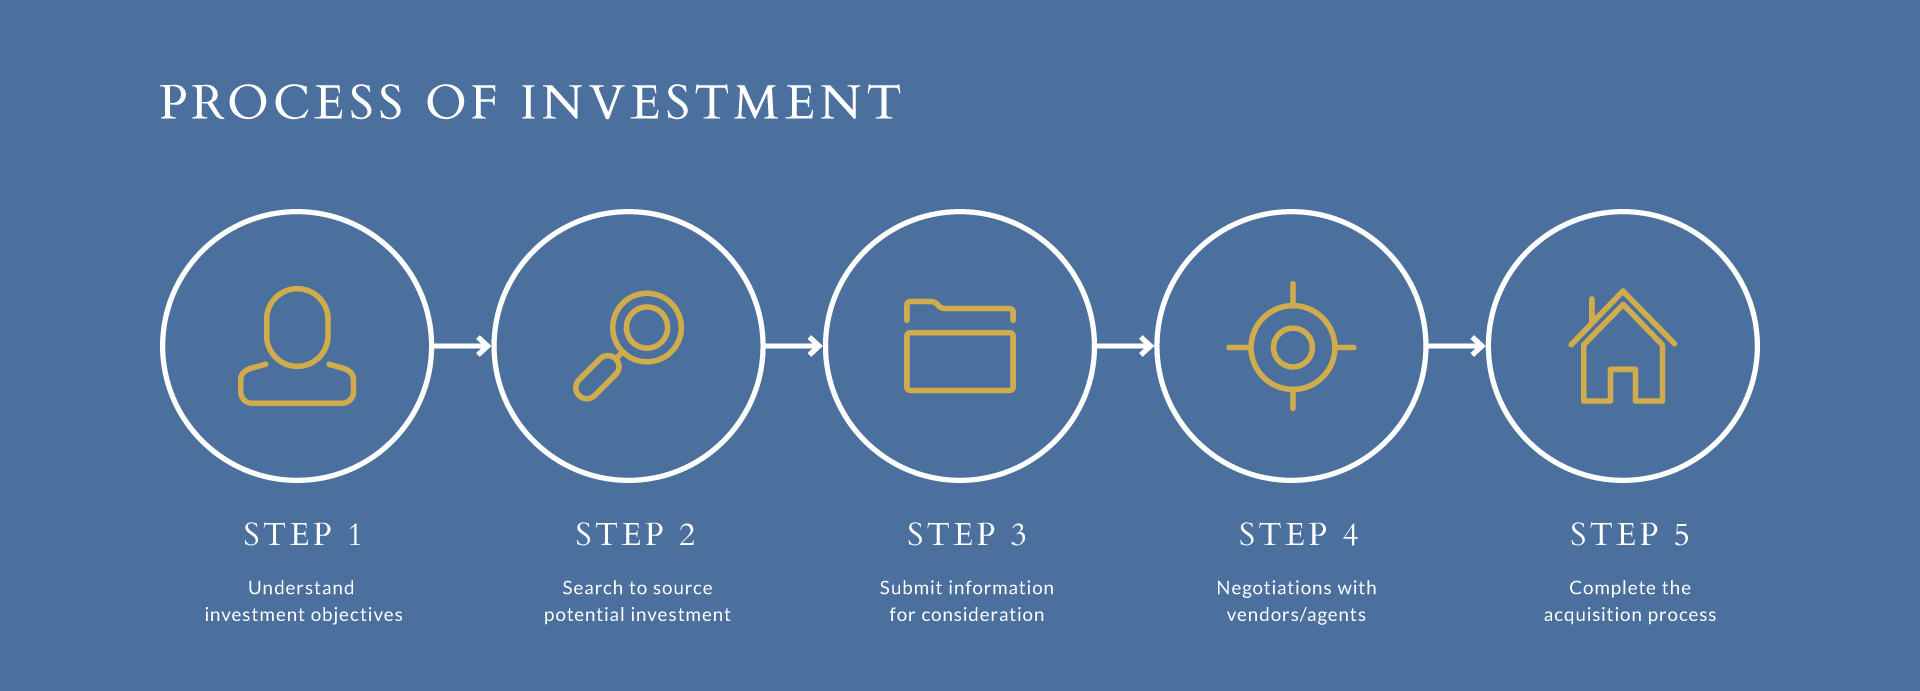 process_of_investment_slide